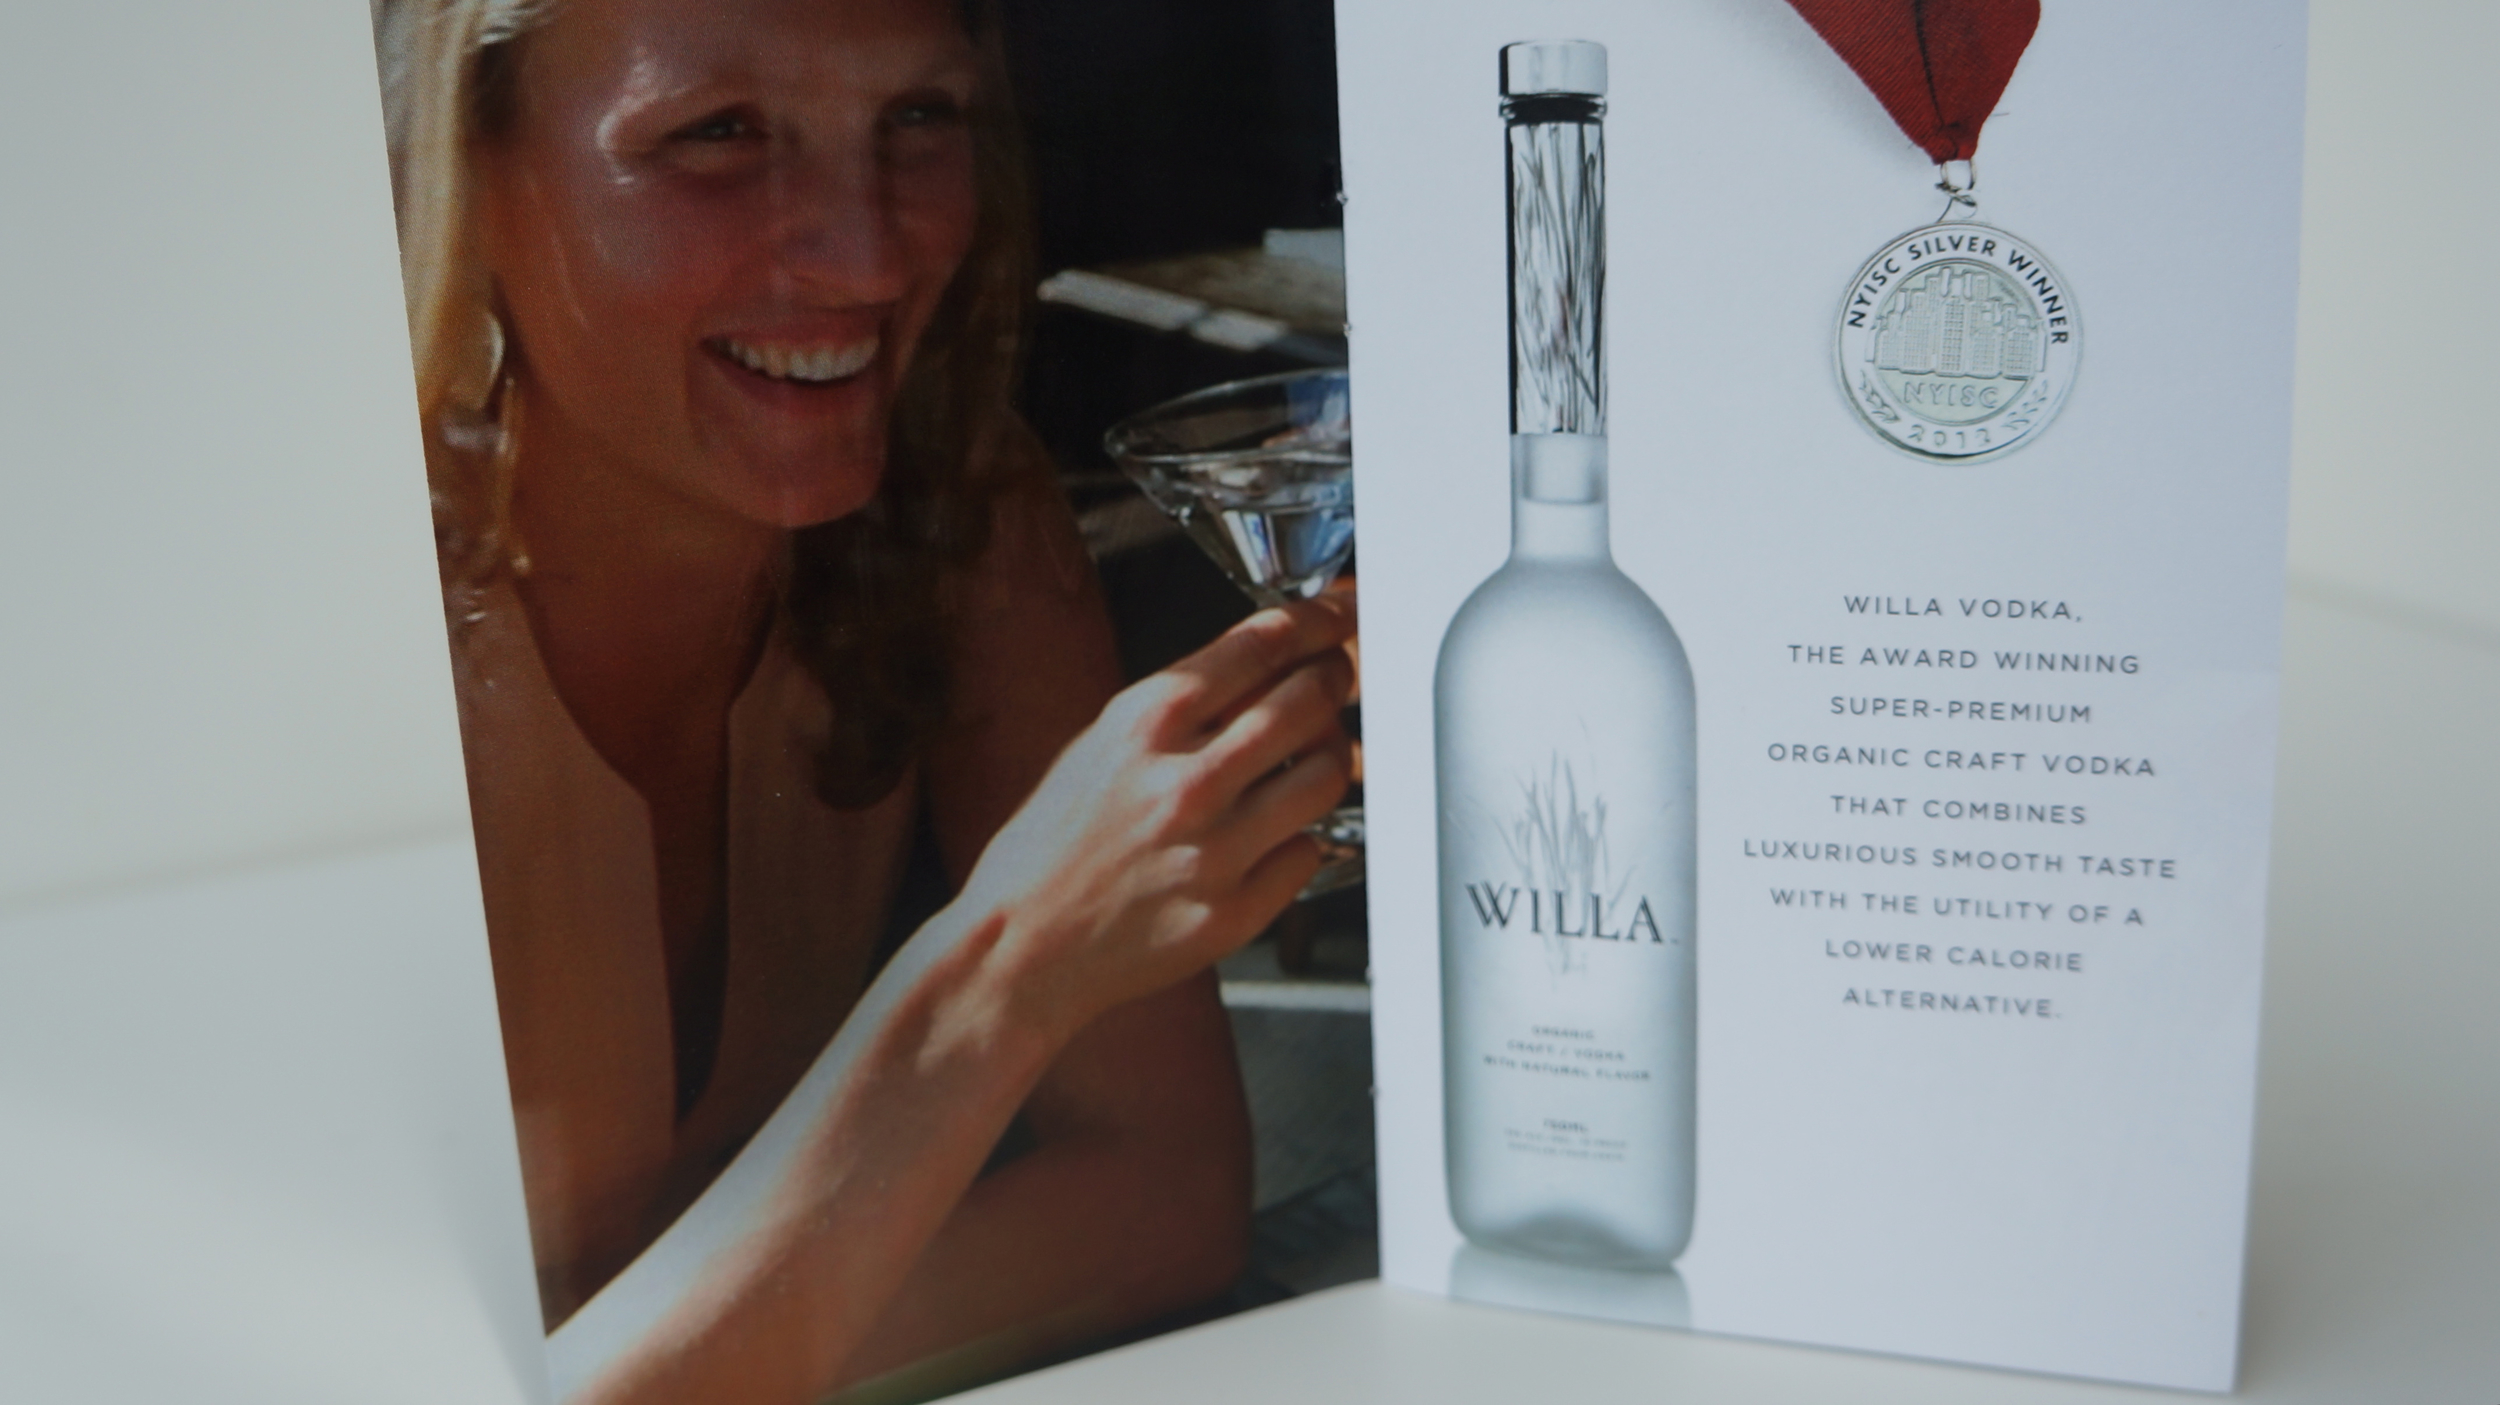 willa booklet2.jpg